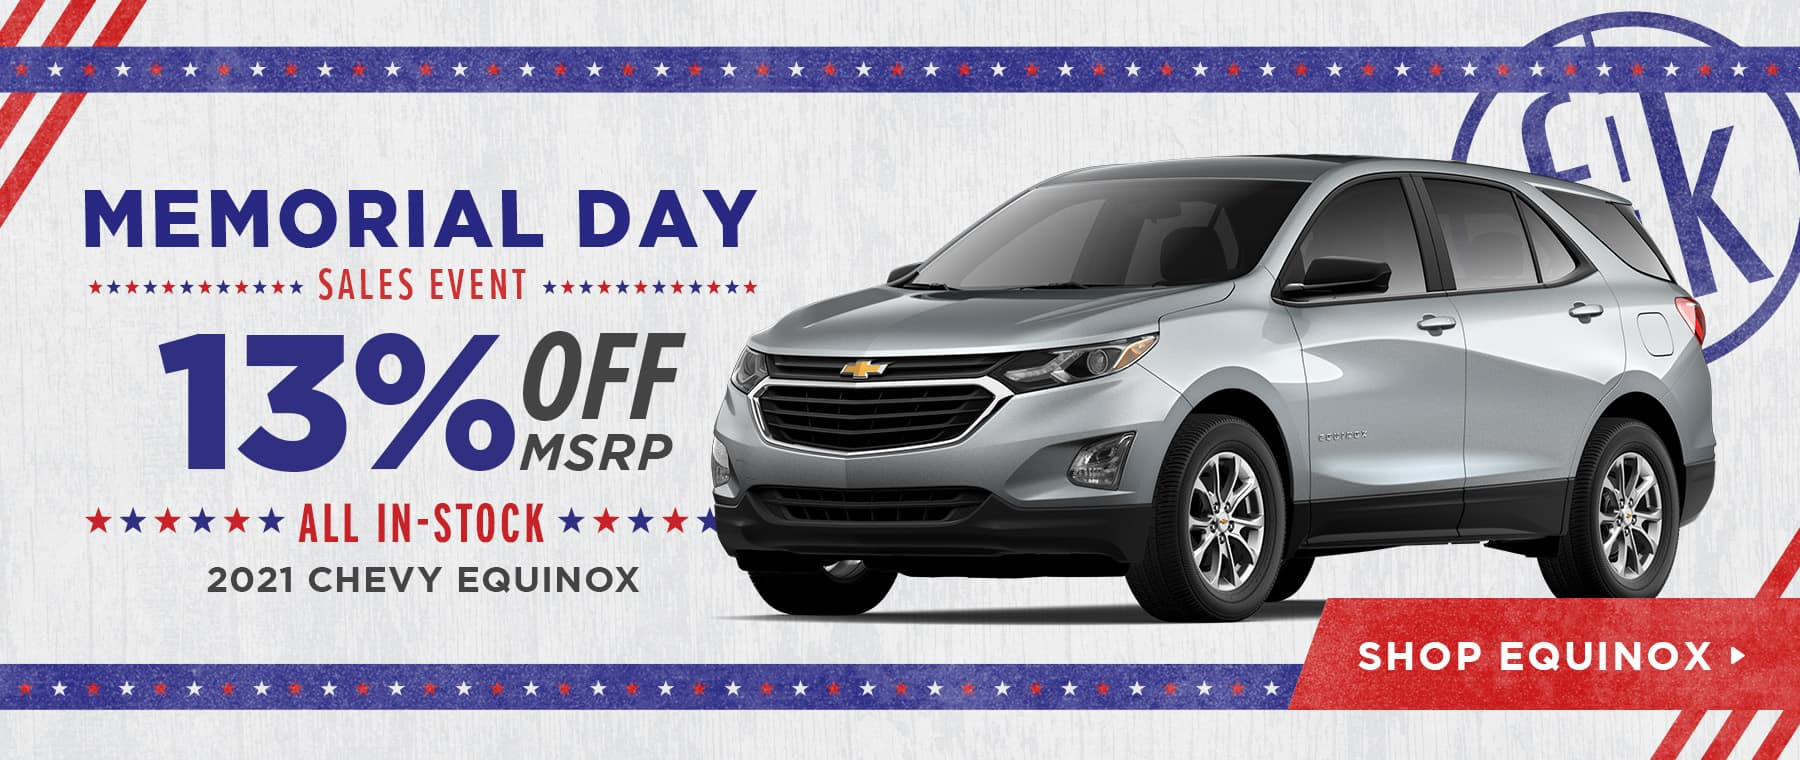 13% Off All In-Stock 2021 Chevy Equinox